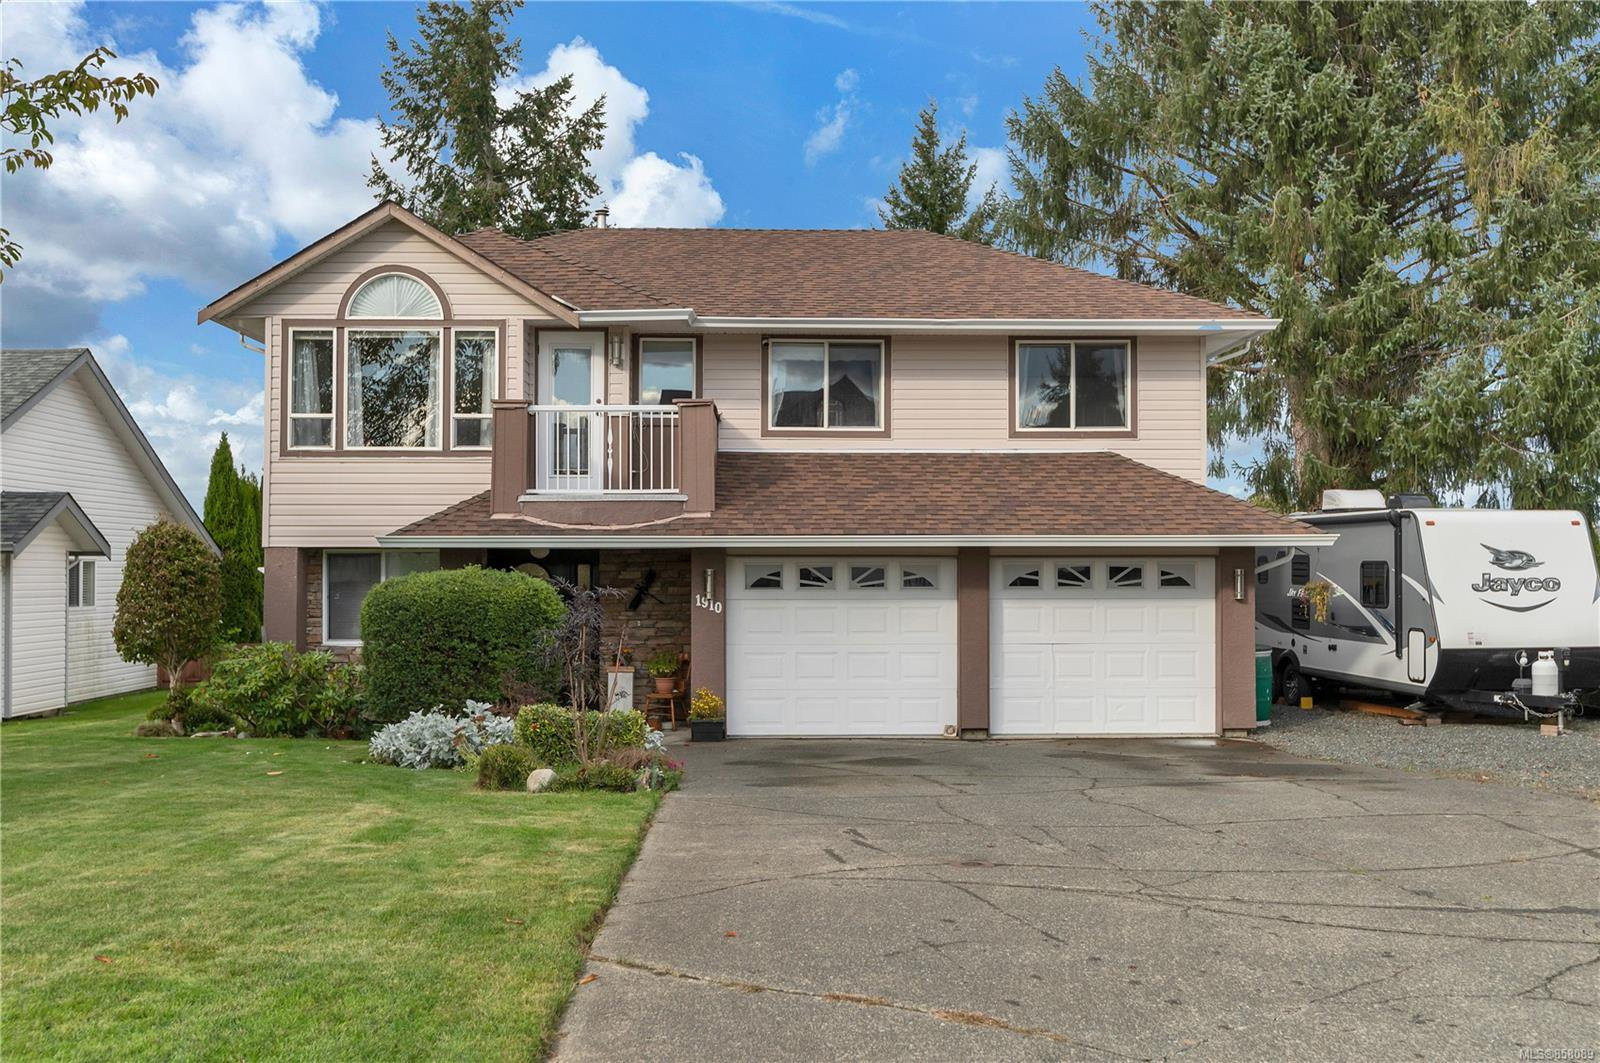 Main Photo: 1910 Cheviot Rd in : CR Campbell River North House for sale (Campbell River)  : MLS®# 858089